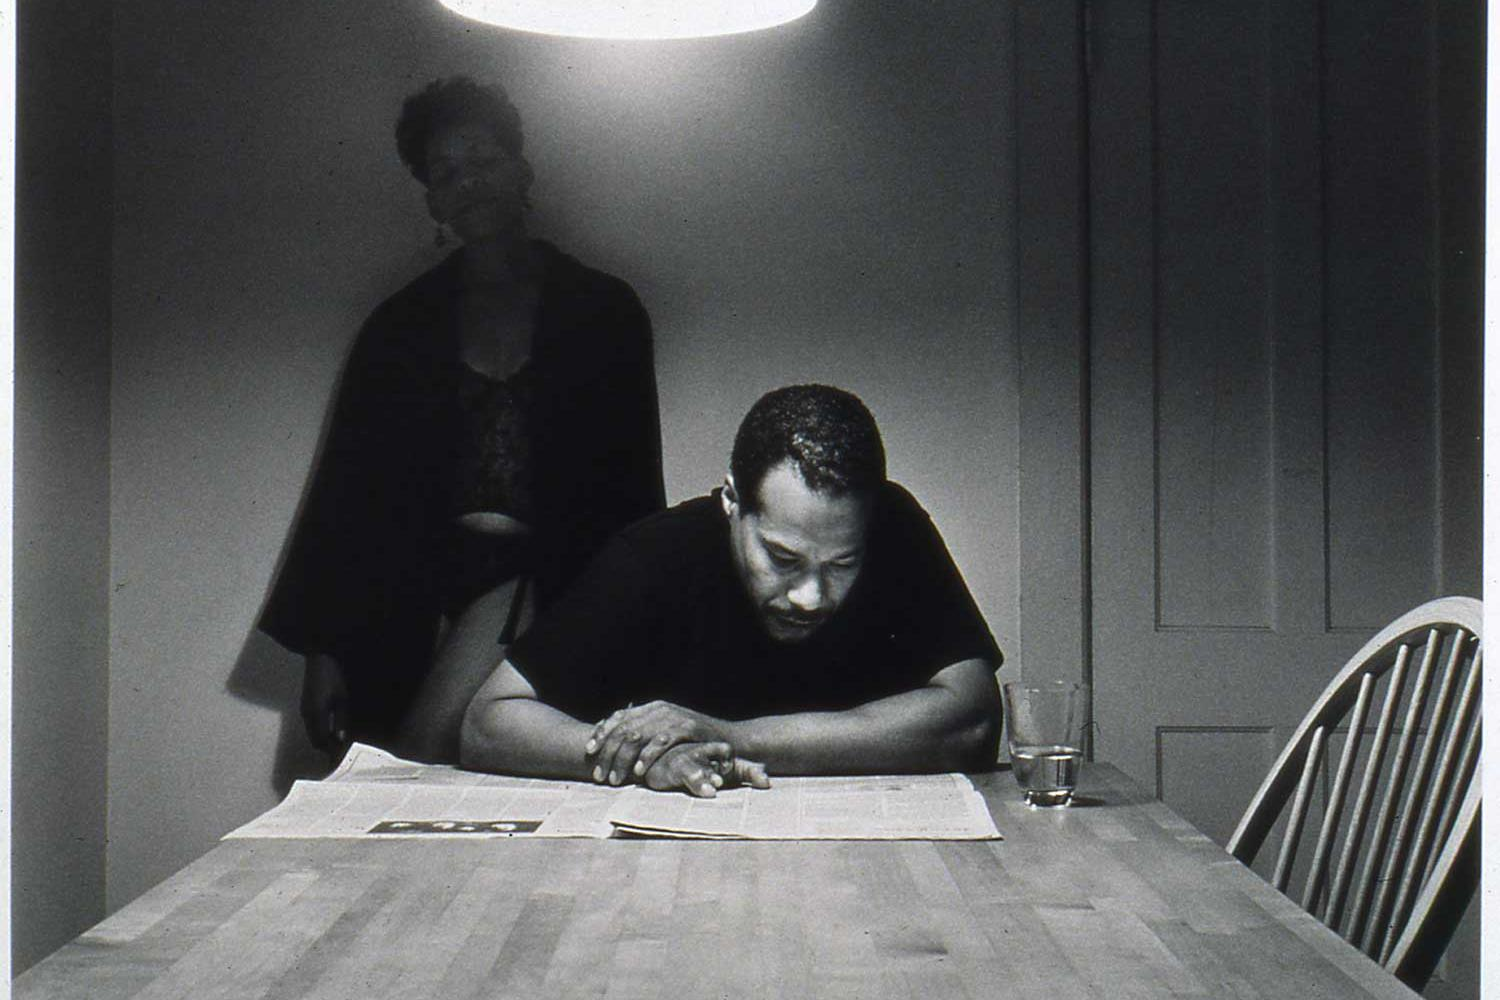 two african american figures, a man and a woman, at a kitchen table